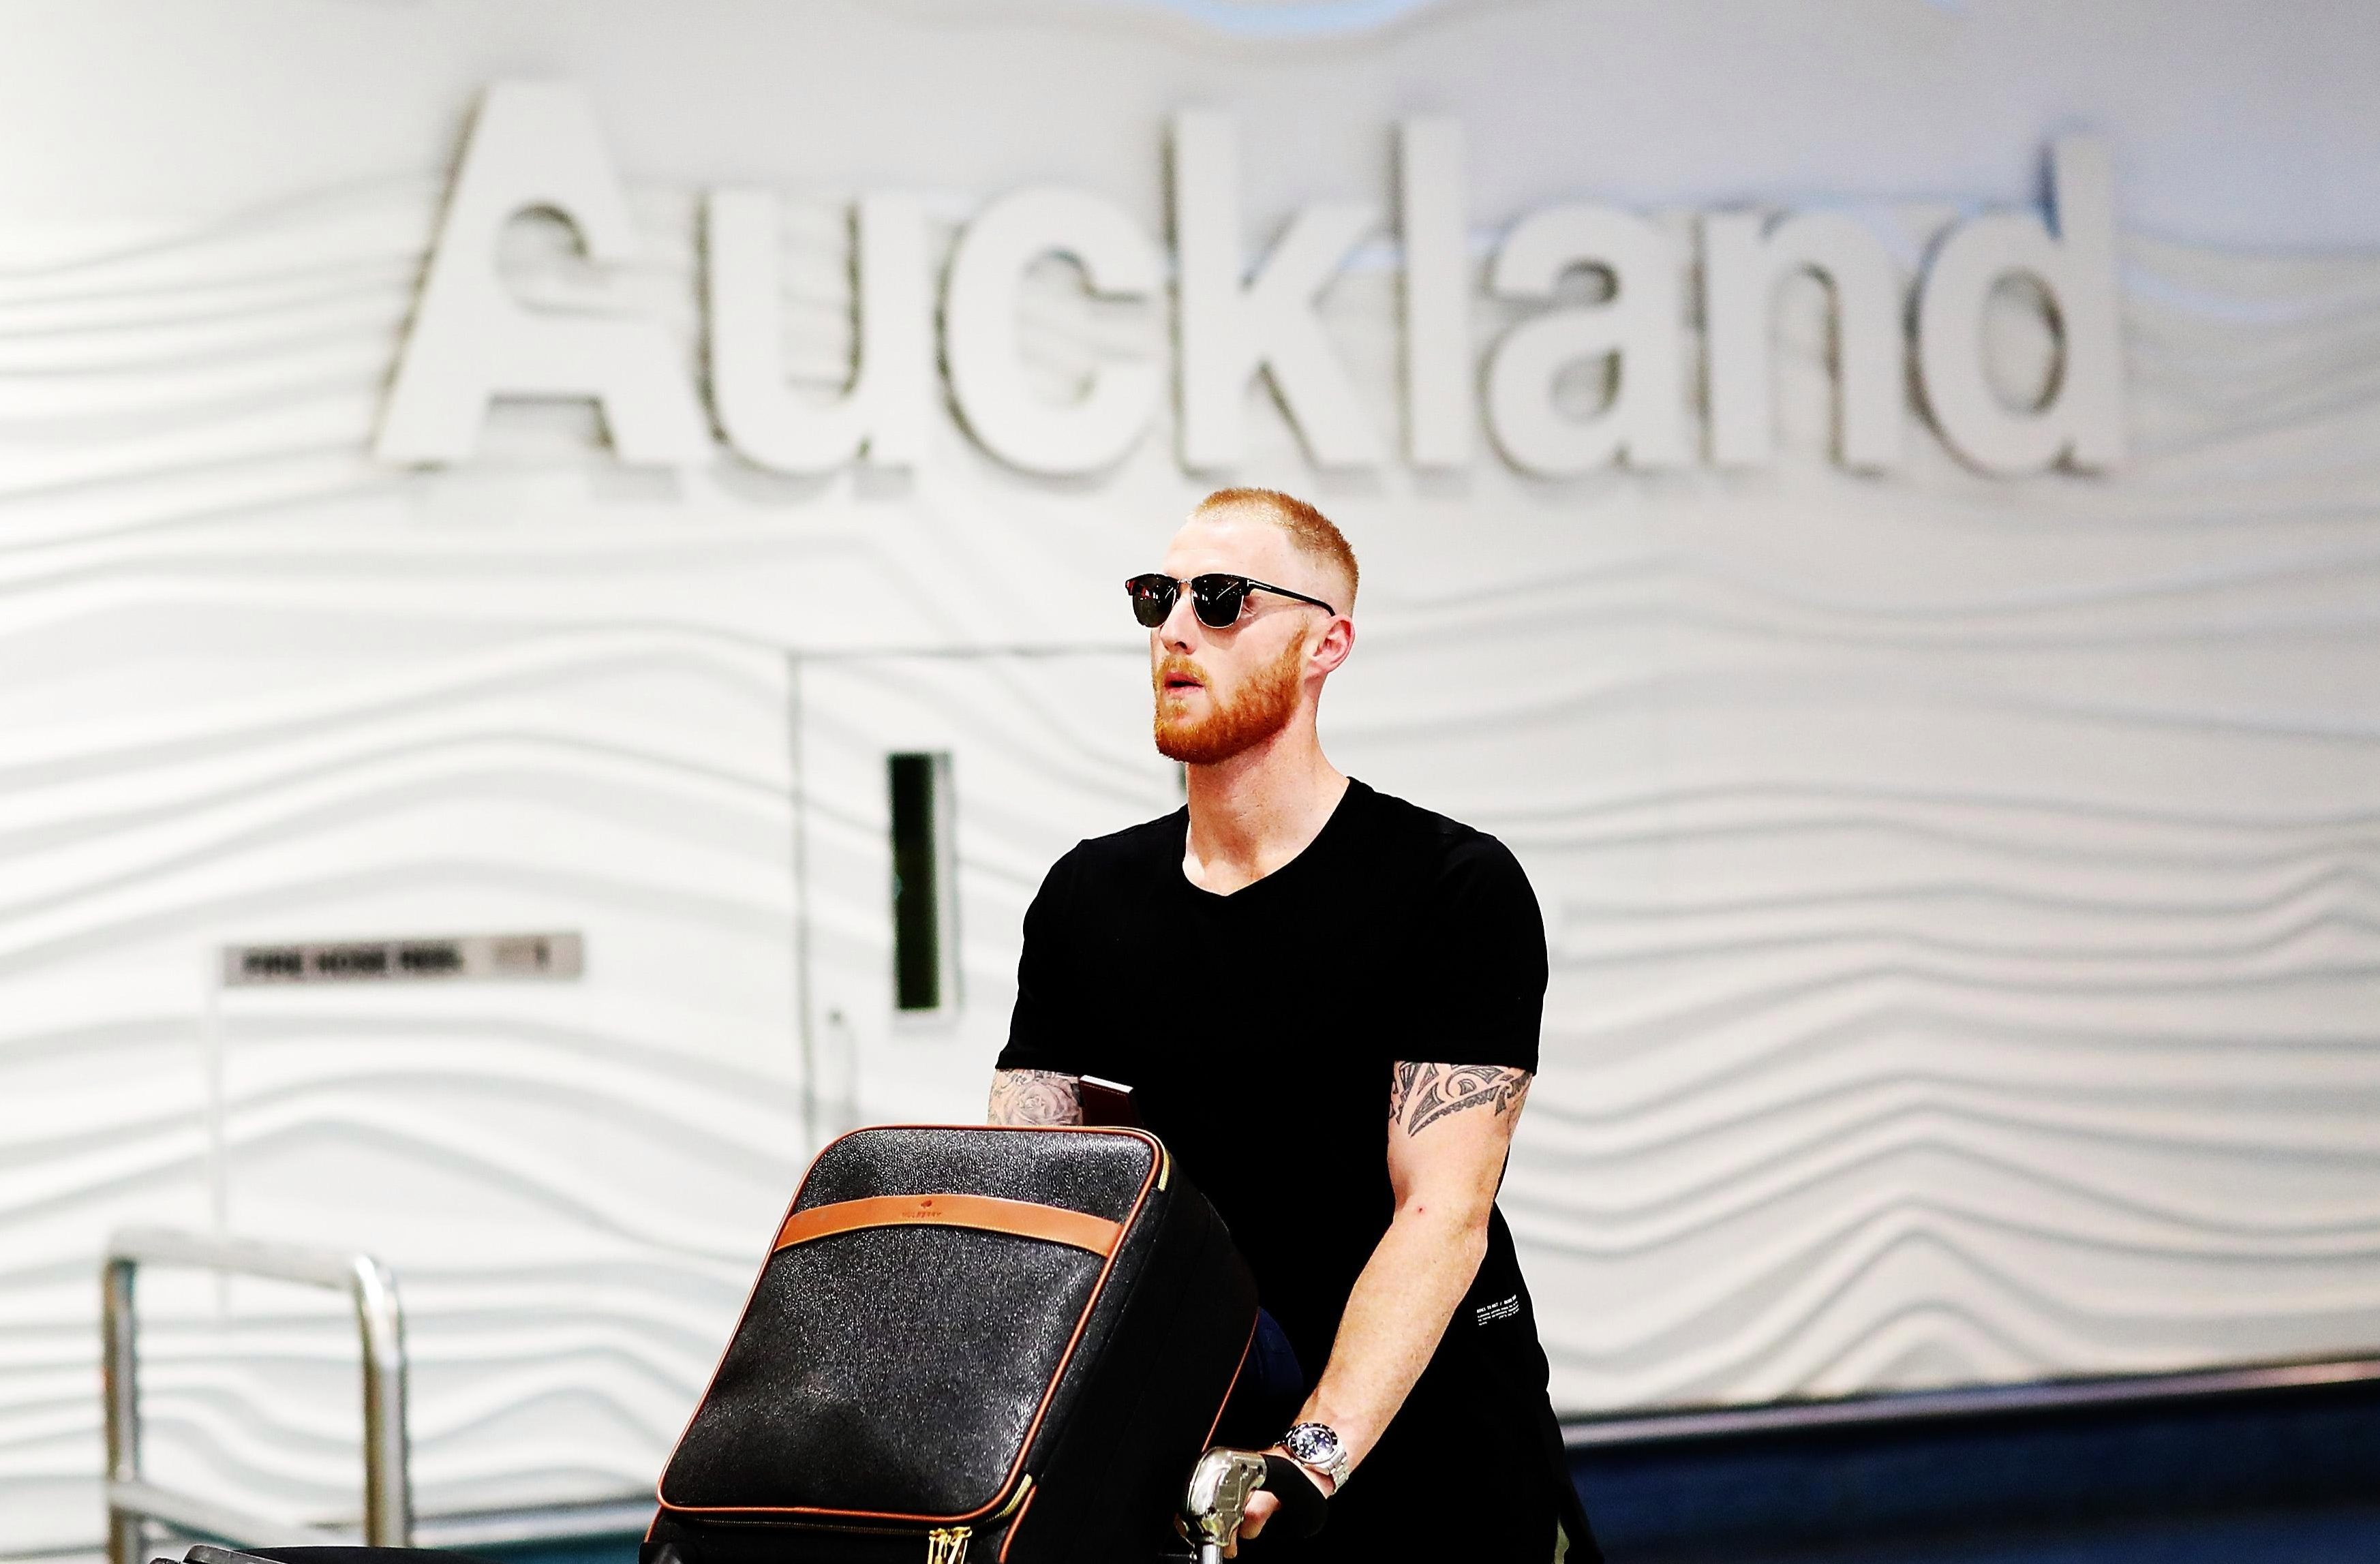 Stokes covers up any sleep deprived eyes with sunglasses after landing in Auckland